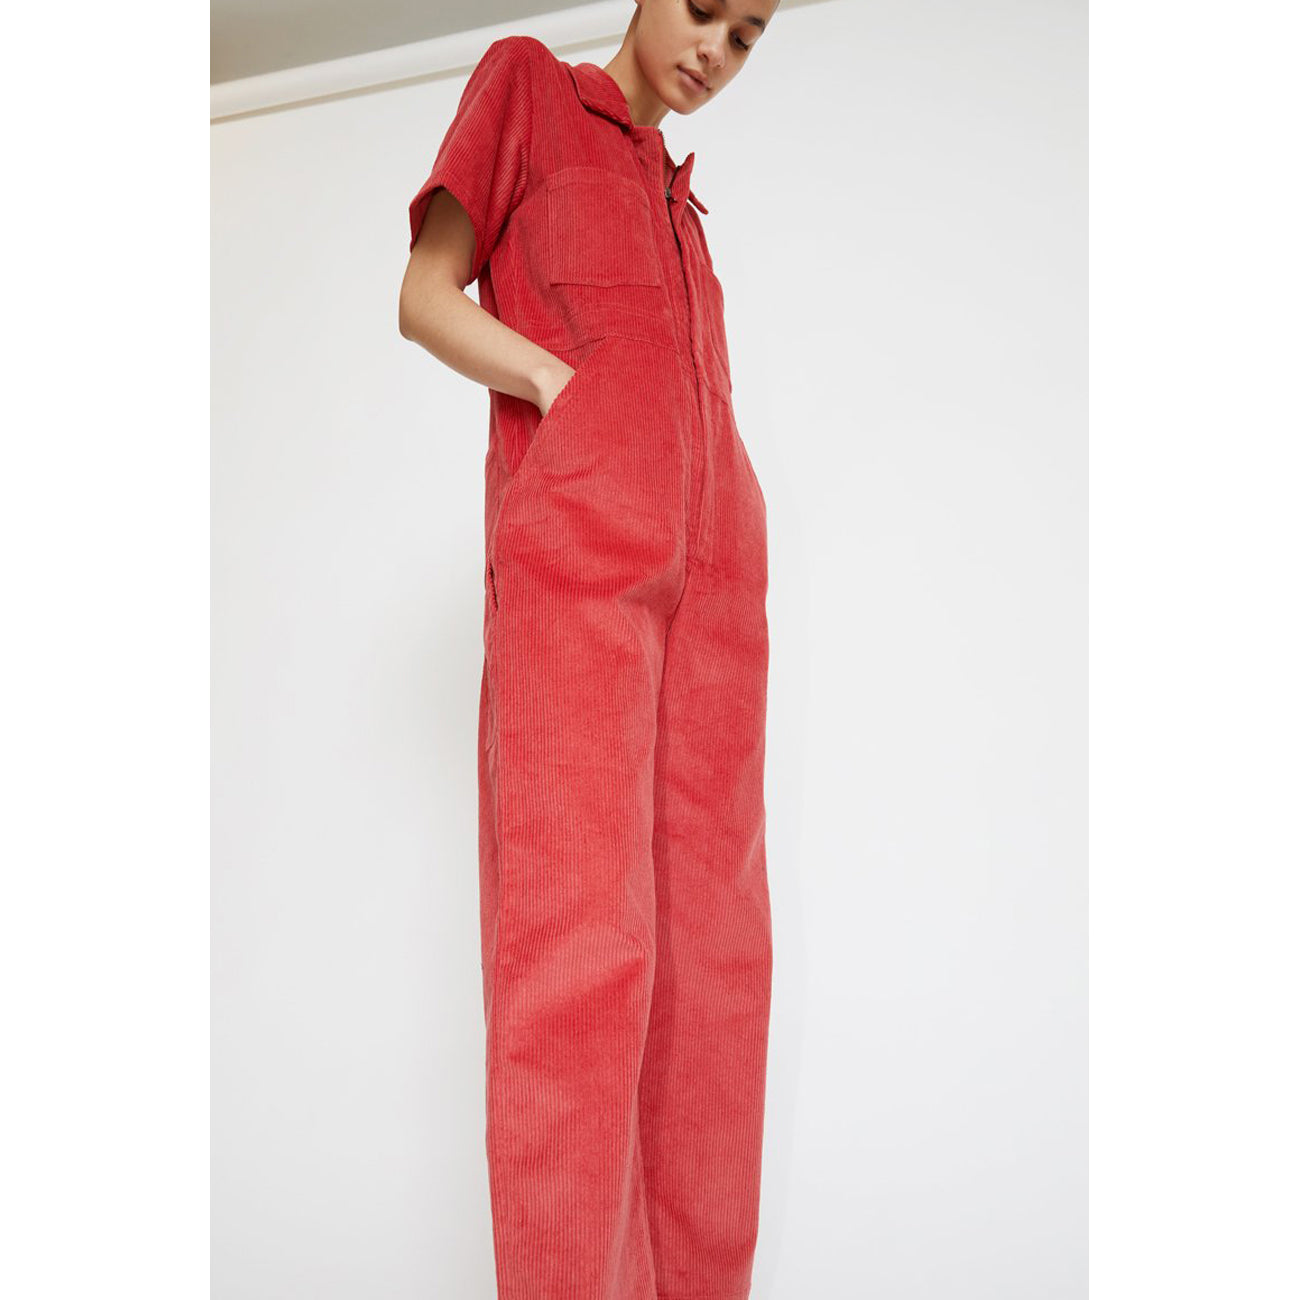 freya coverall in rose corduroy